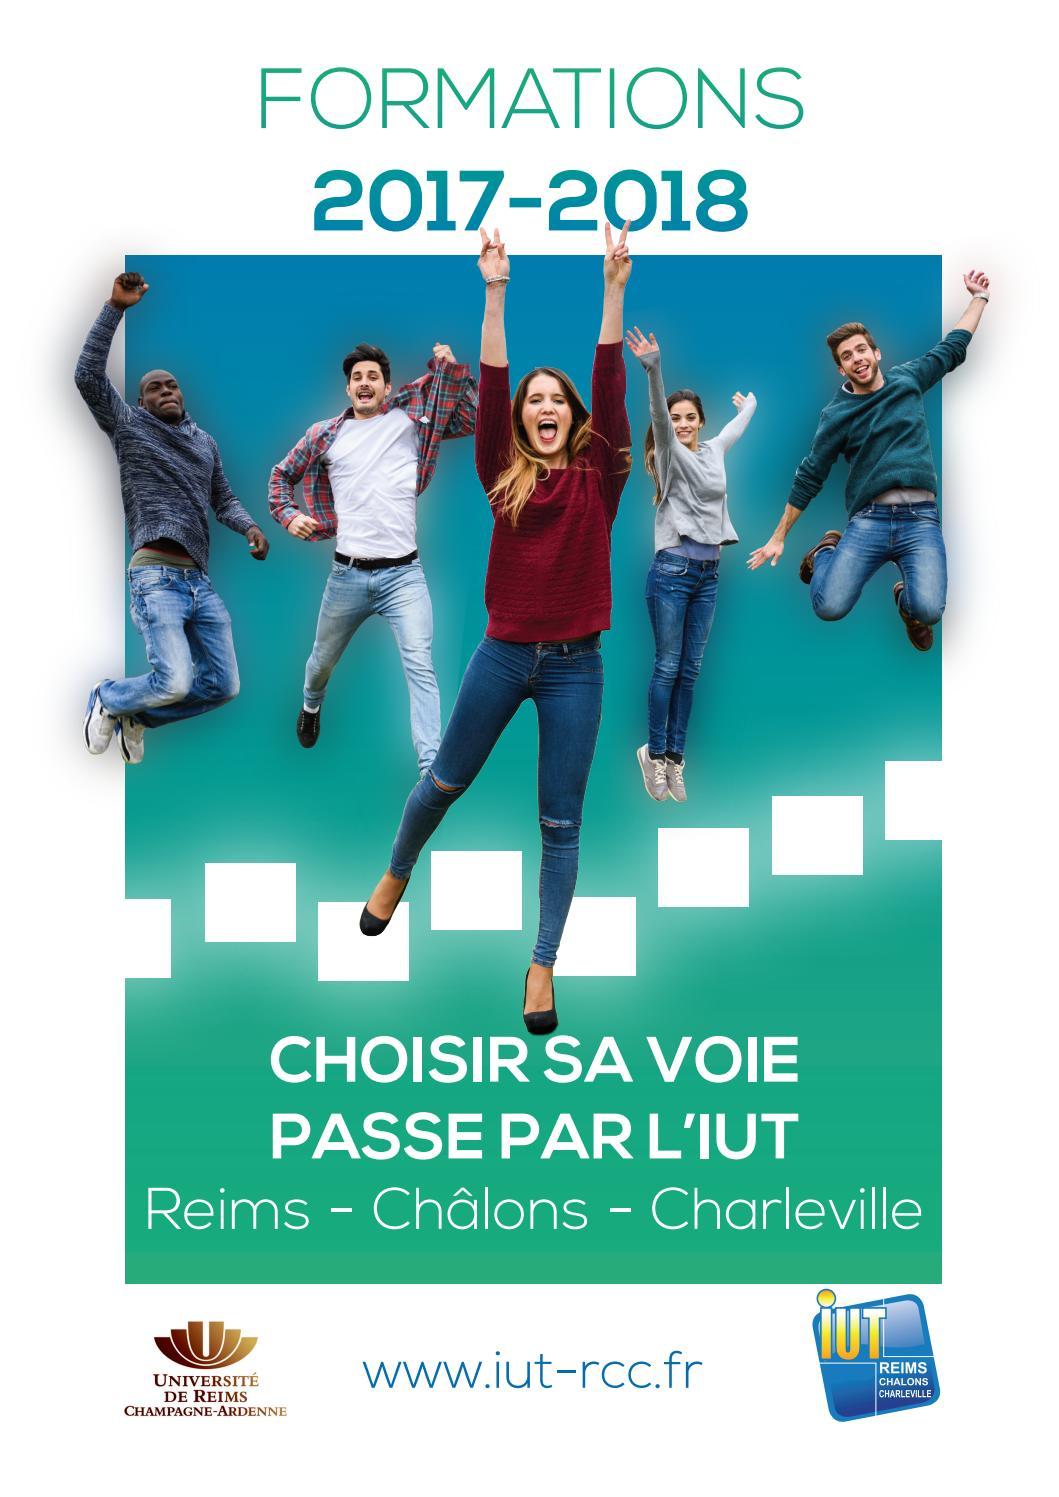 IUT Reims Chlons Charleville Plaquette 20172018 by Merand